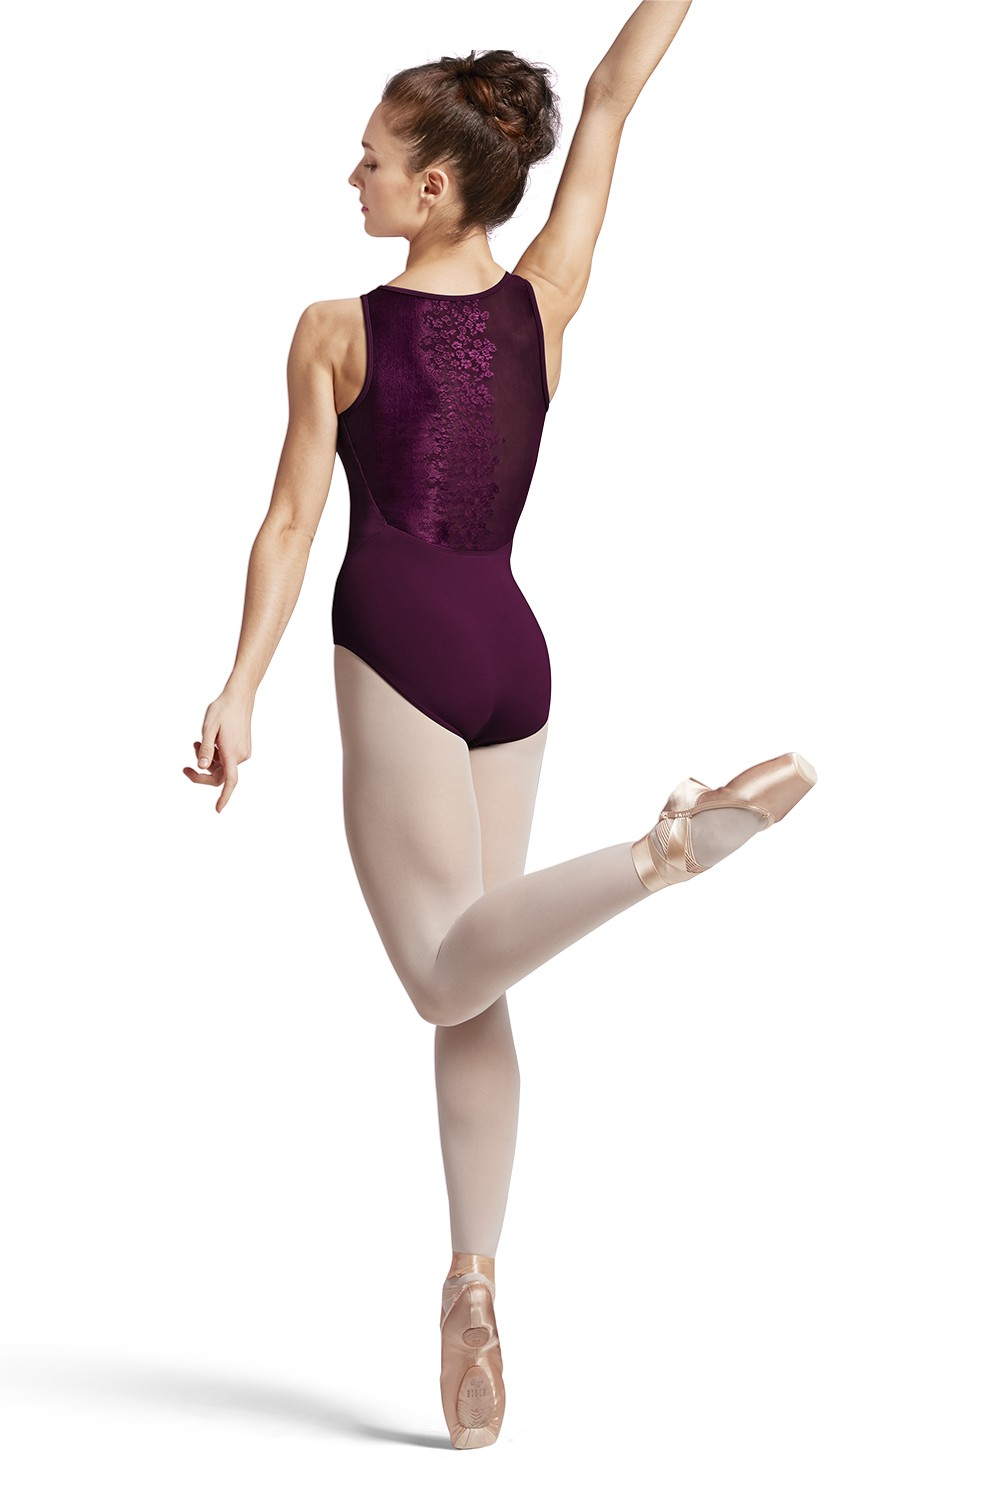 Whitley Women's Dance Leotards